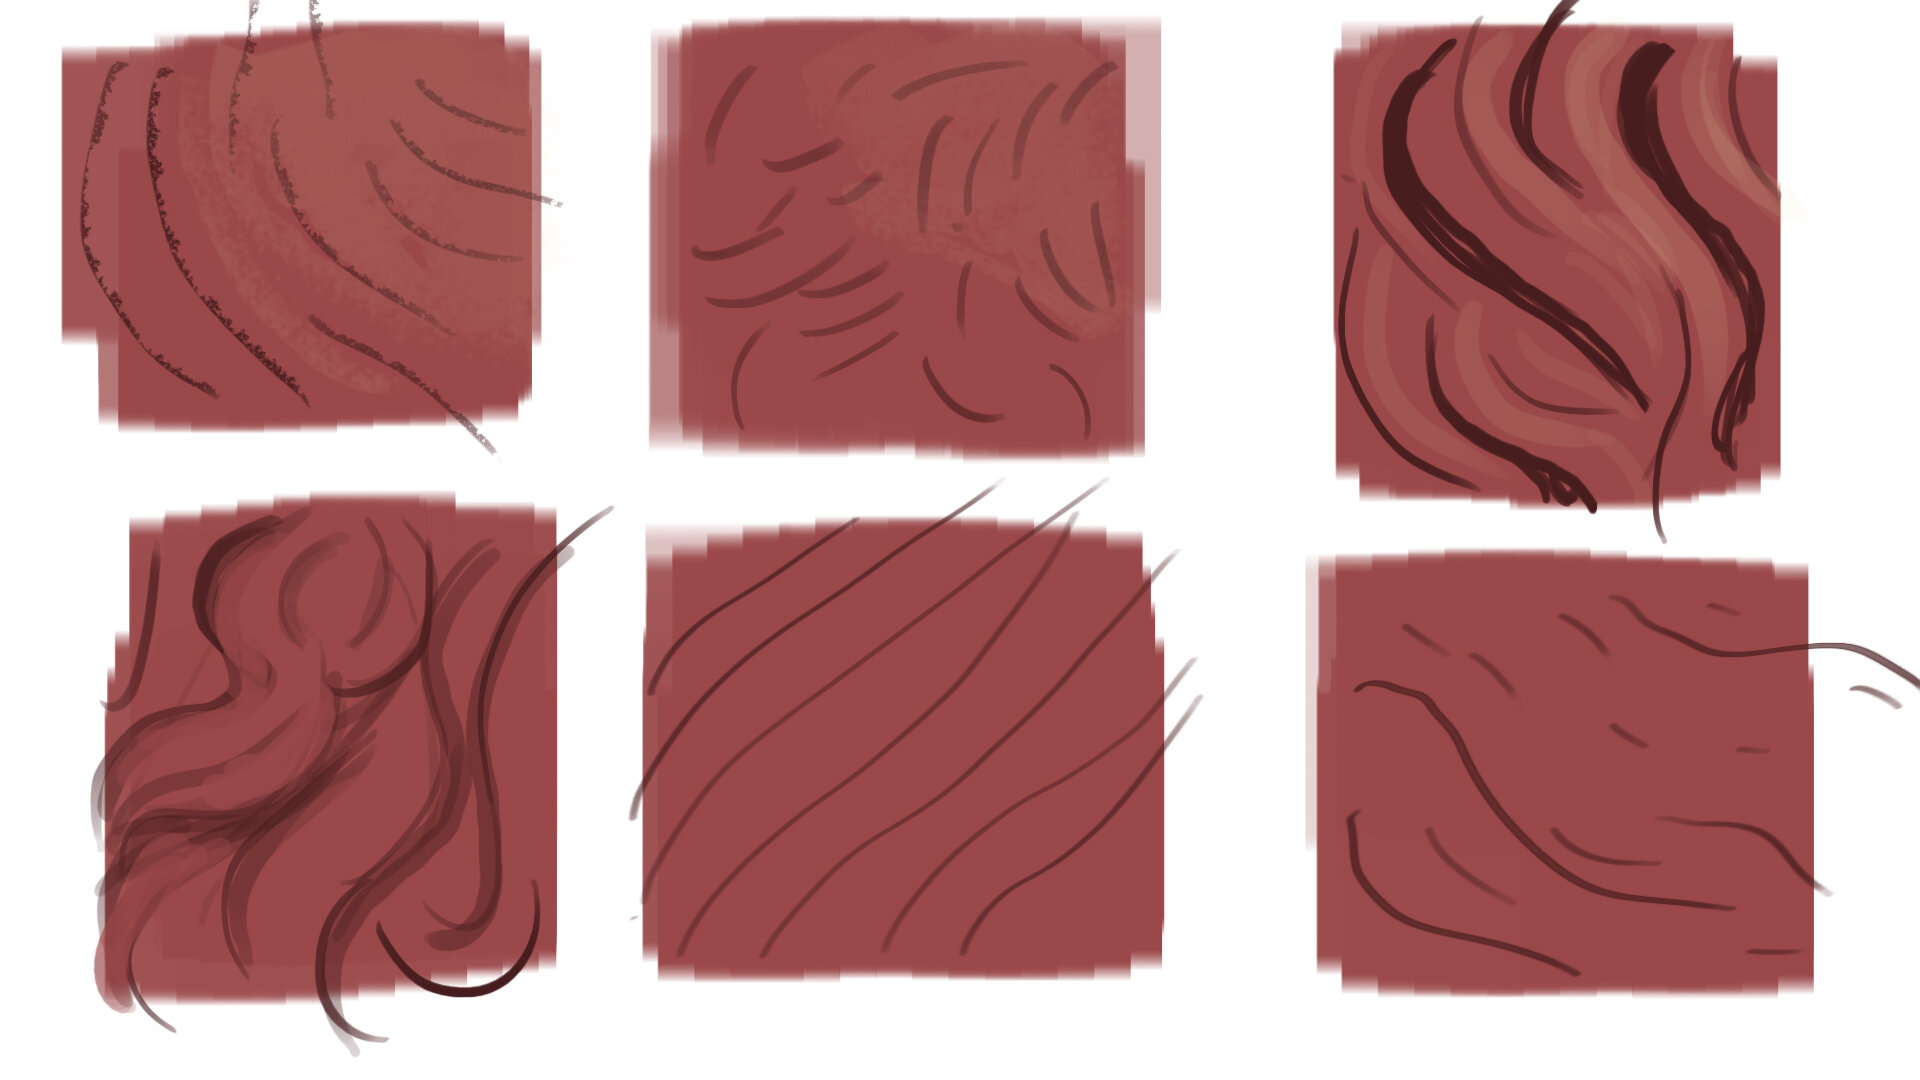 hair paint concepts0.jpg